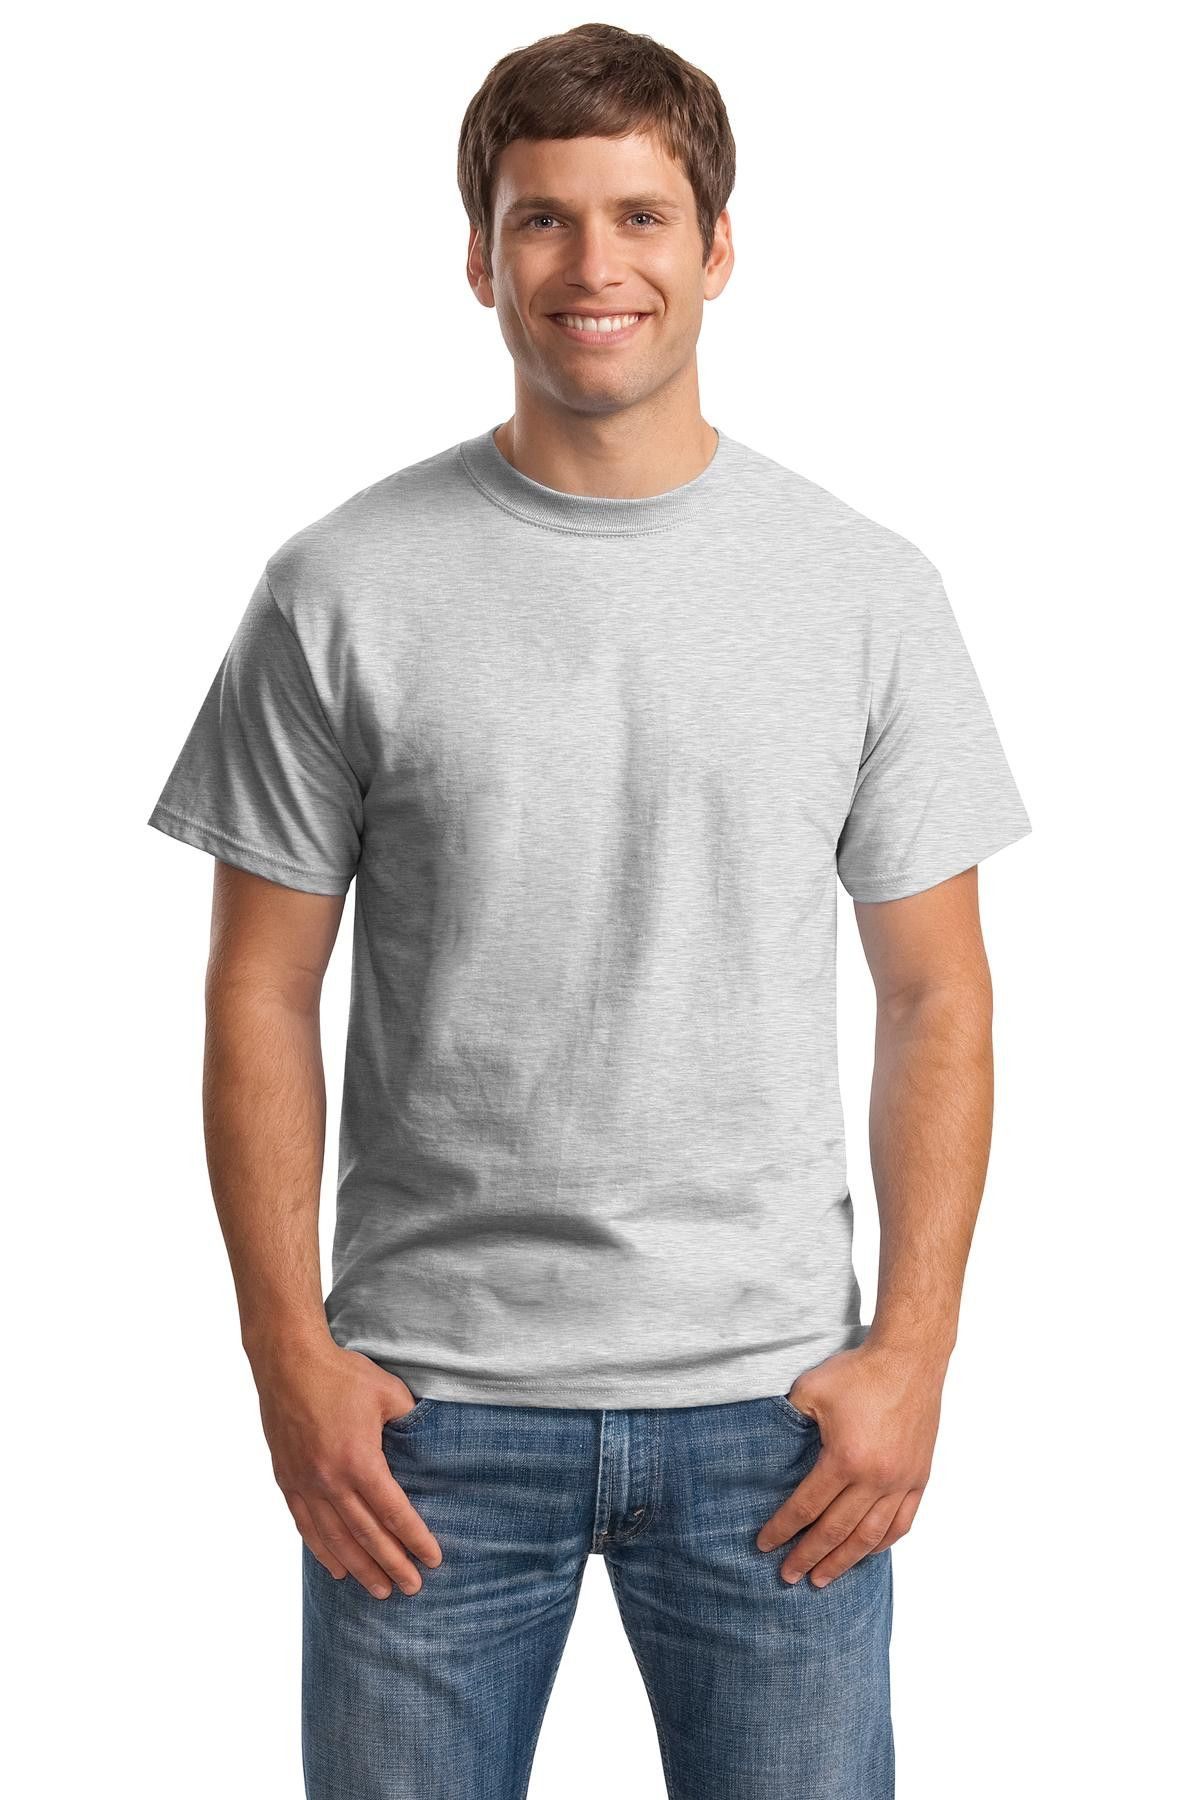 Hanes Beefy-T - Born To Be Worn 100% Cotton T-Shirt.5180 Ash